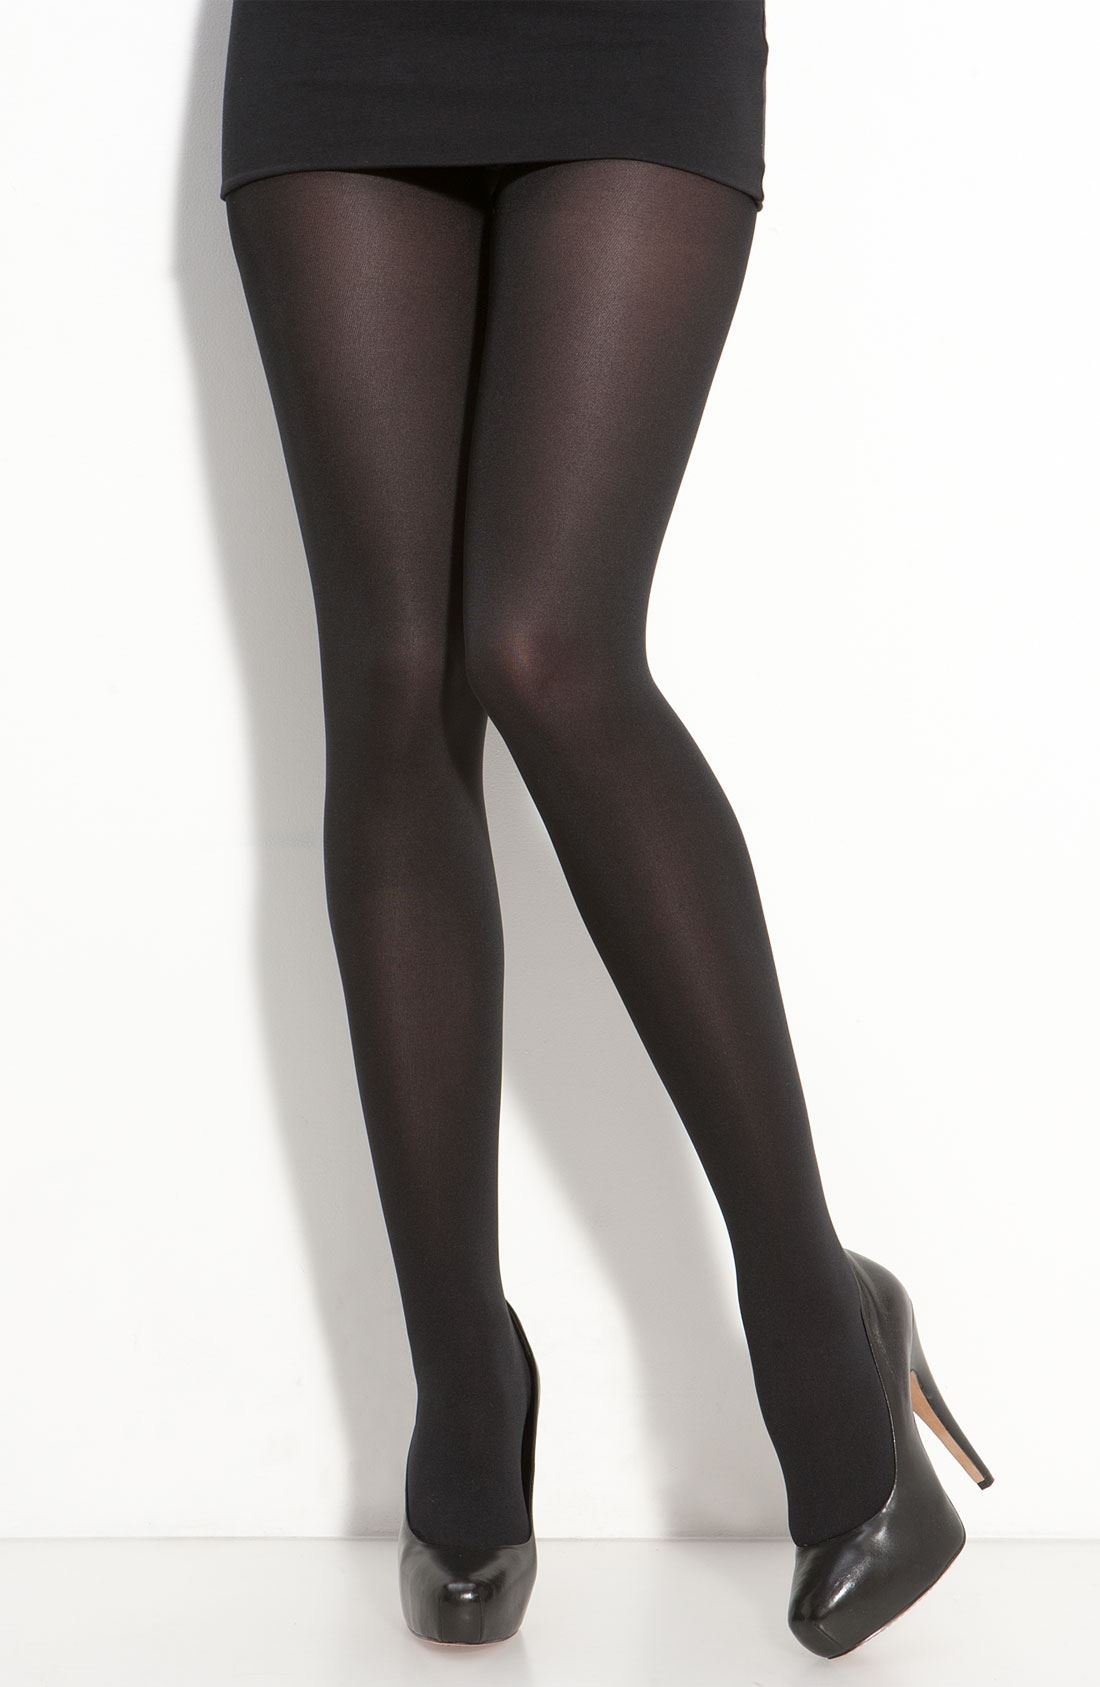 Halloween Tights! We have costume tights! Buy our black tights! Check our opaque tights! Multicolored tights! Complete the look with our womens tights!